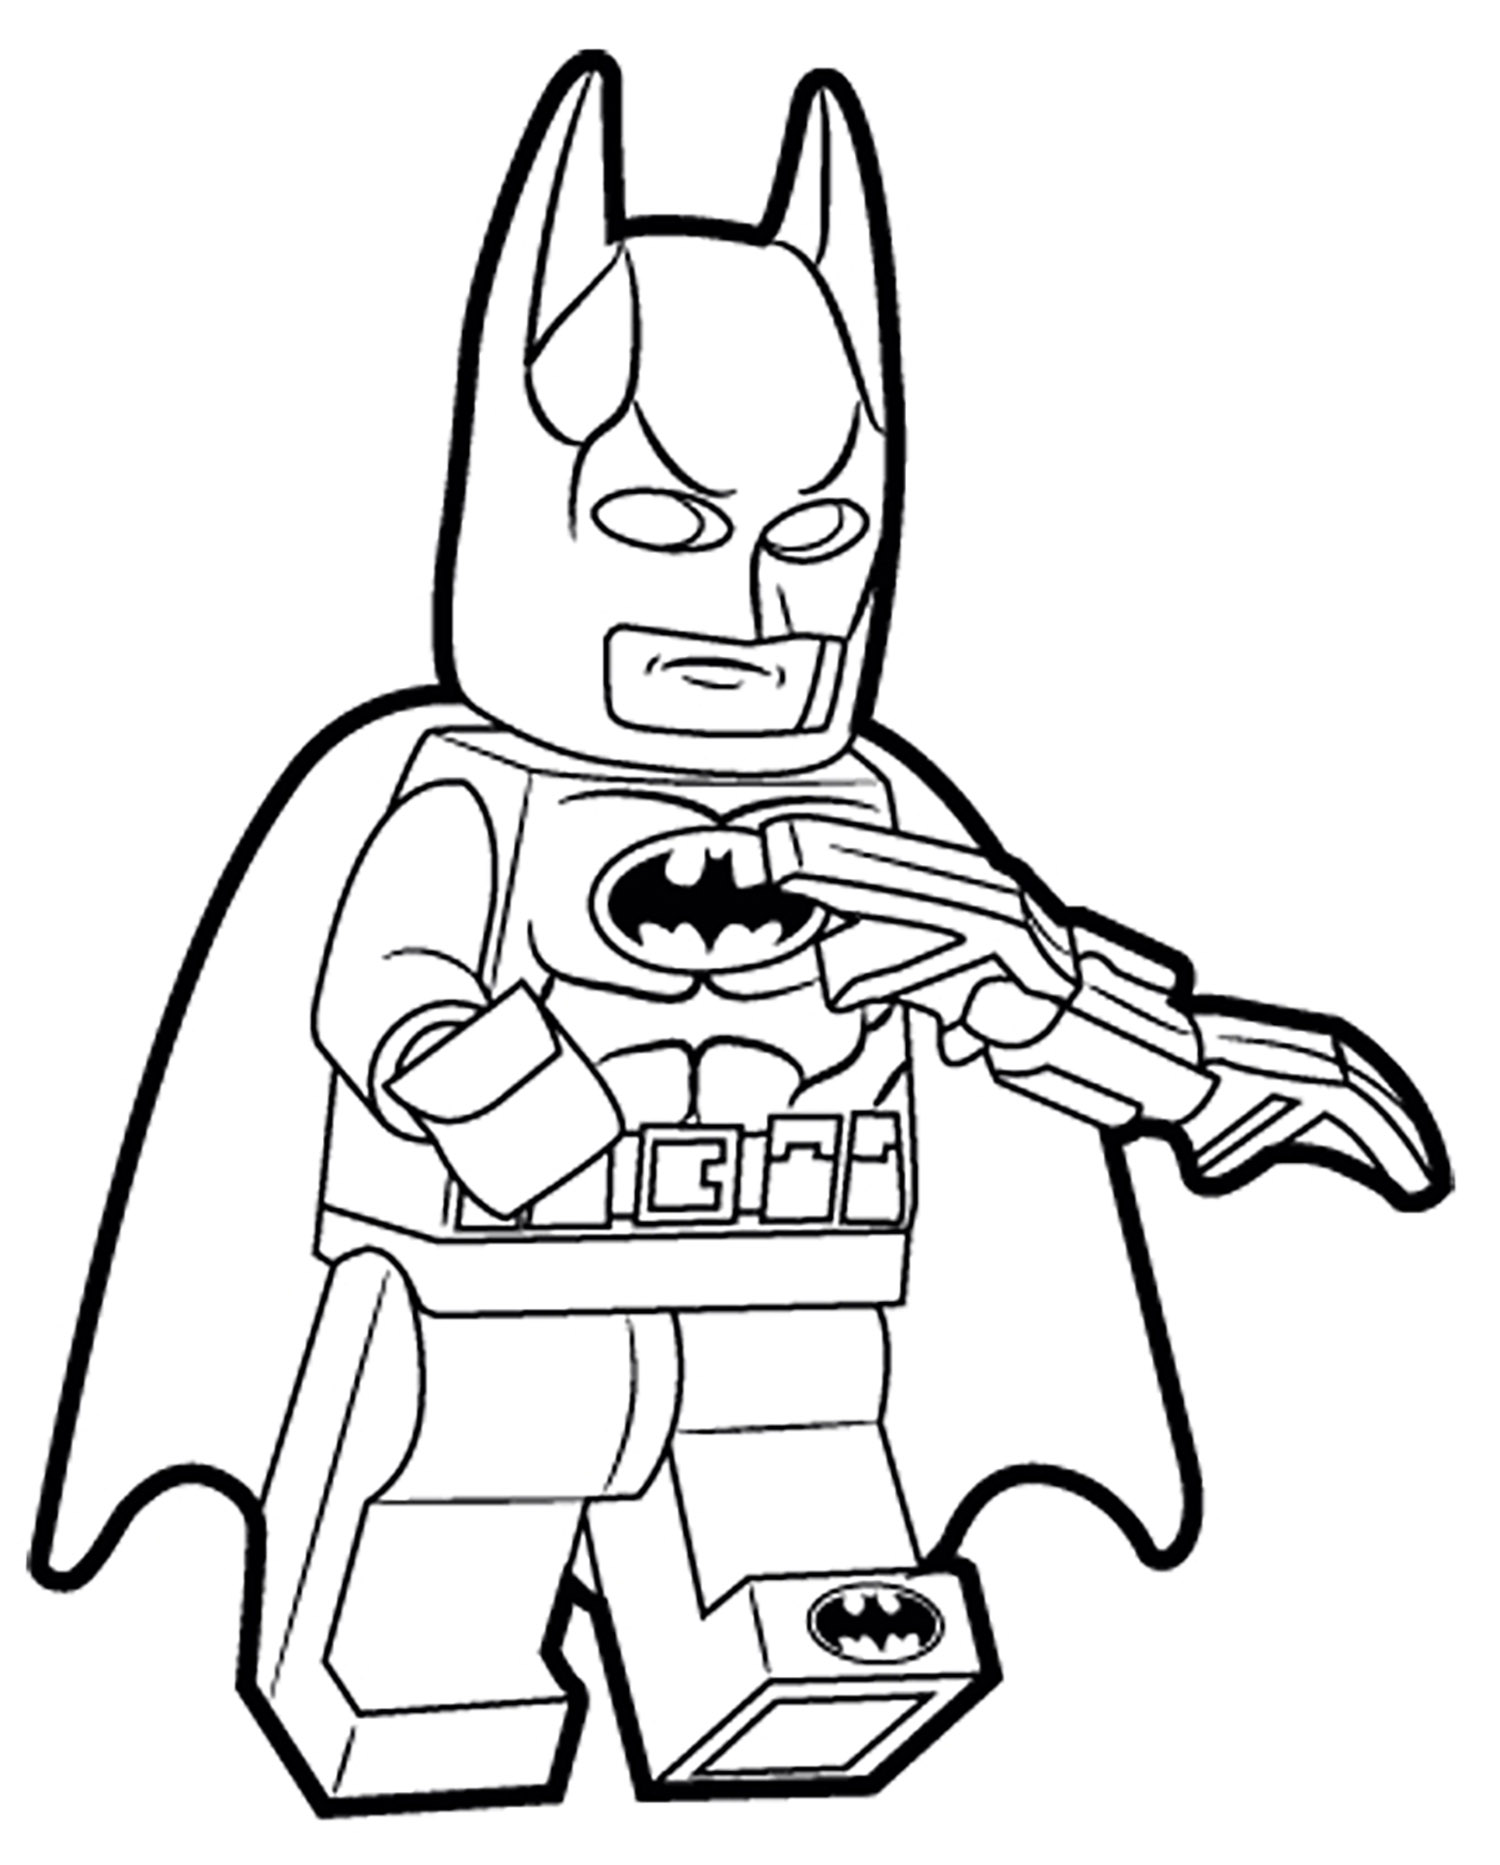 Lego batman 1 coloriage lego batman coloriages pour enfants - Coloriage batman ...